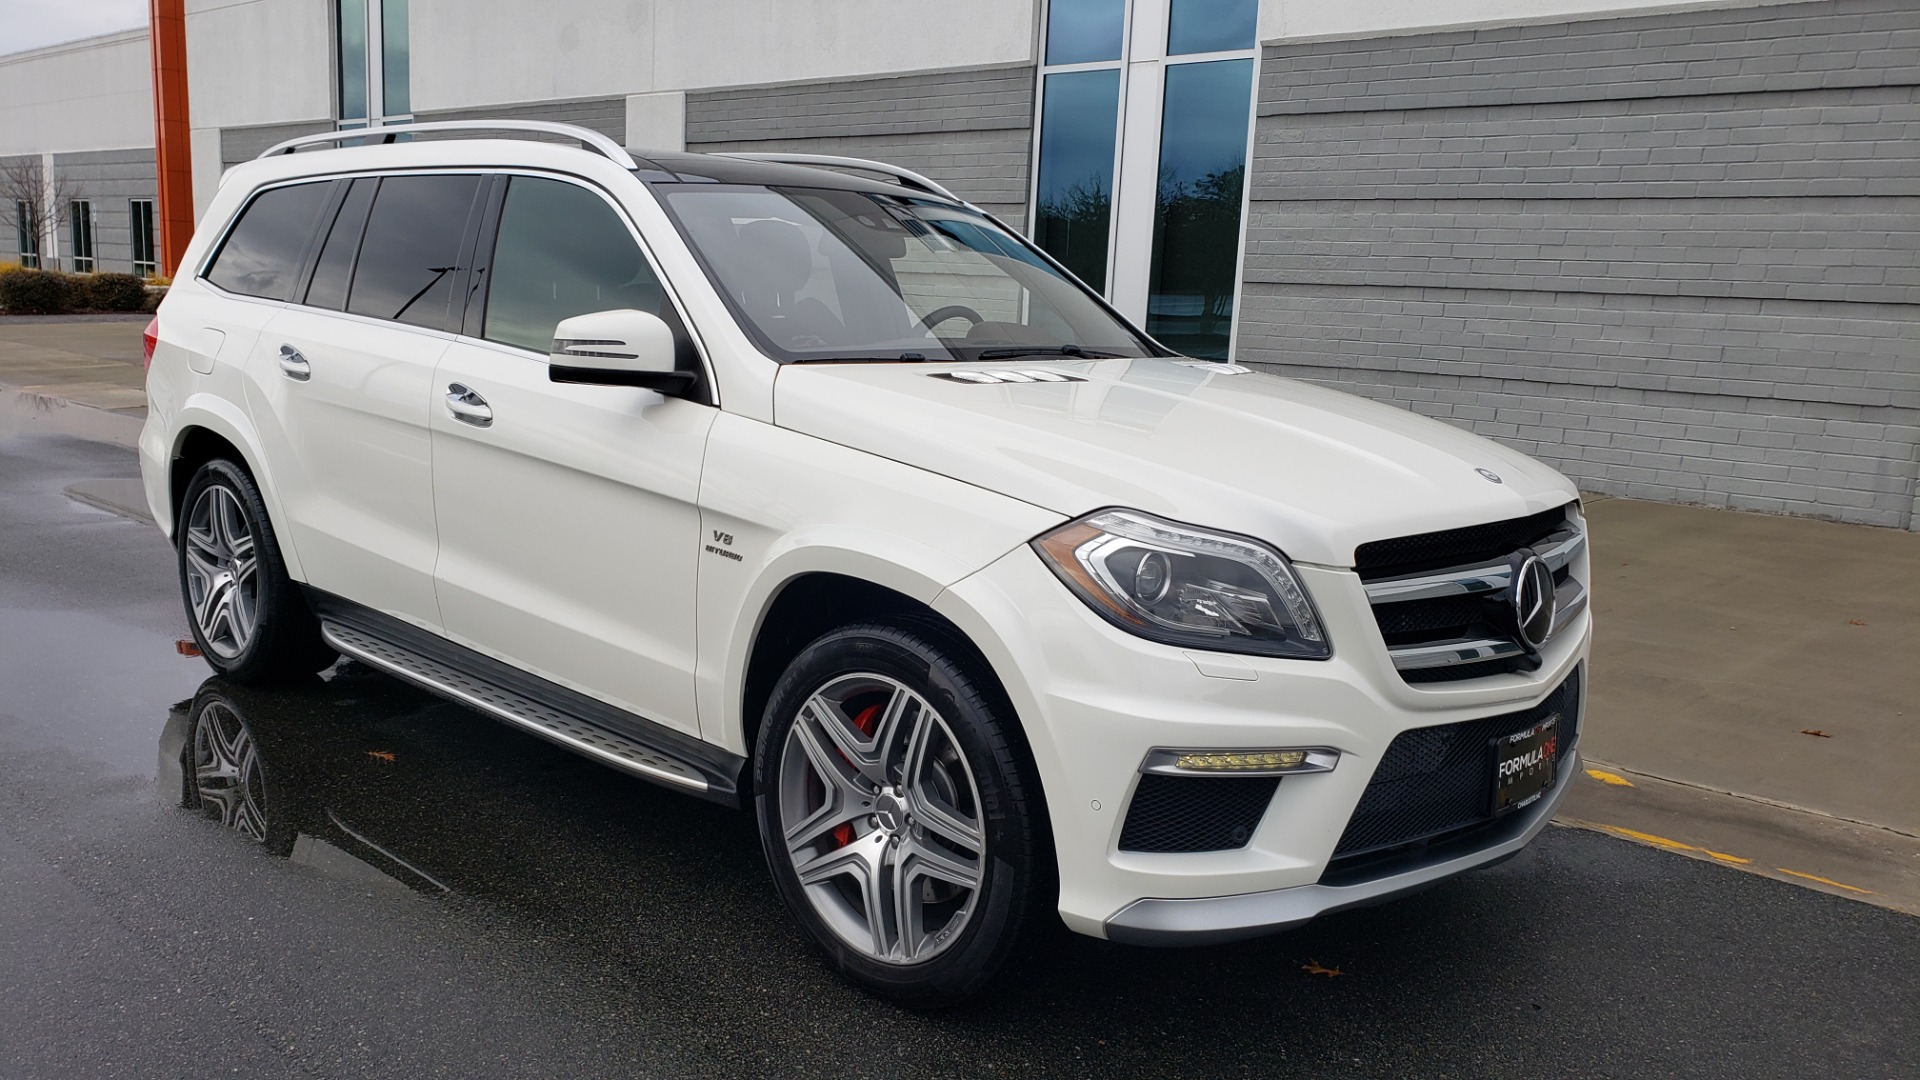 Used 2014 Mercedes-Benz GL-CLASS GL 63 AMG 4MATIC / NIGHT VIEW ASSIST PLUS / BANG & OLUFSEN SND for sale Sold at Formula Imports in Charlotte NC 28227 6